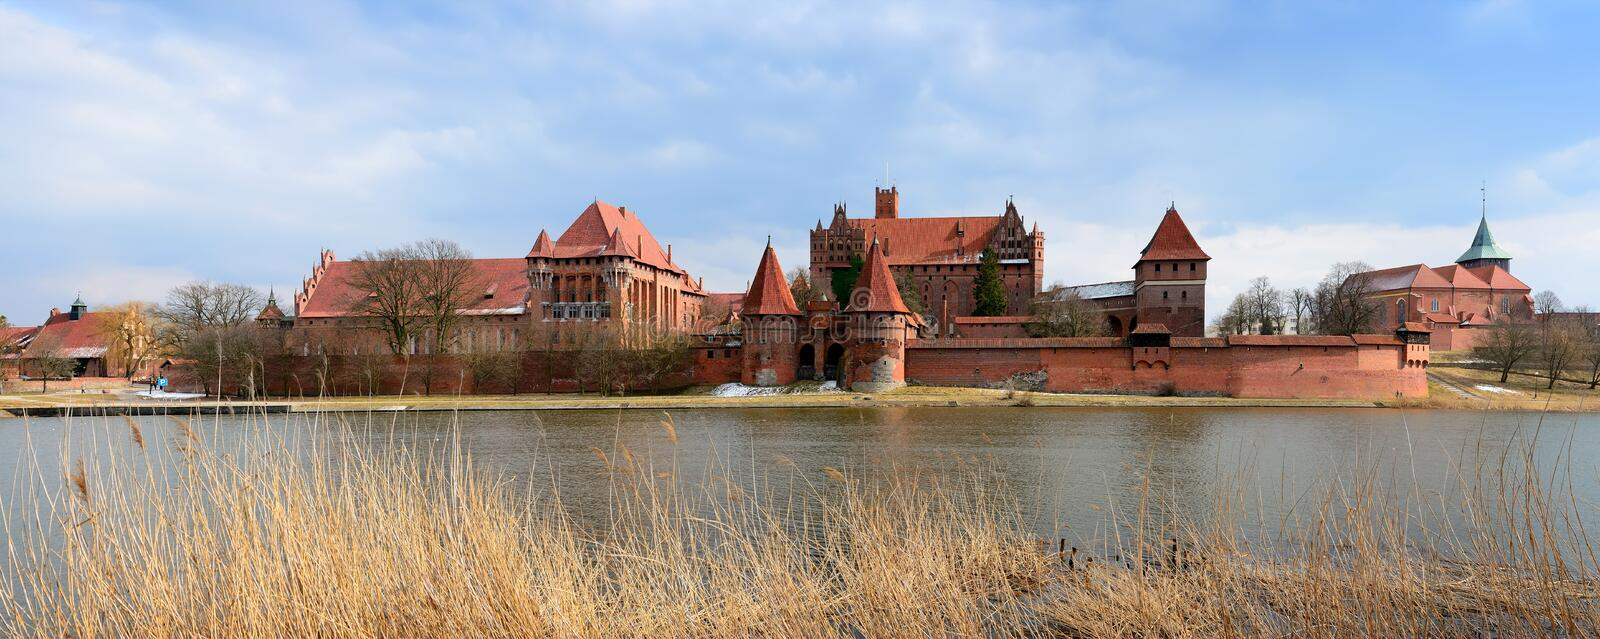 Malbork castle in poland. Panorama with medieval castle in malbork (marienburg), poland royalty free stock photos